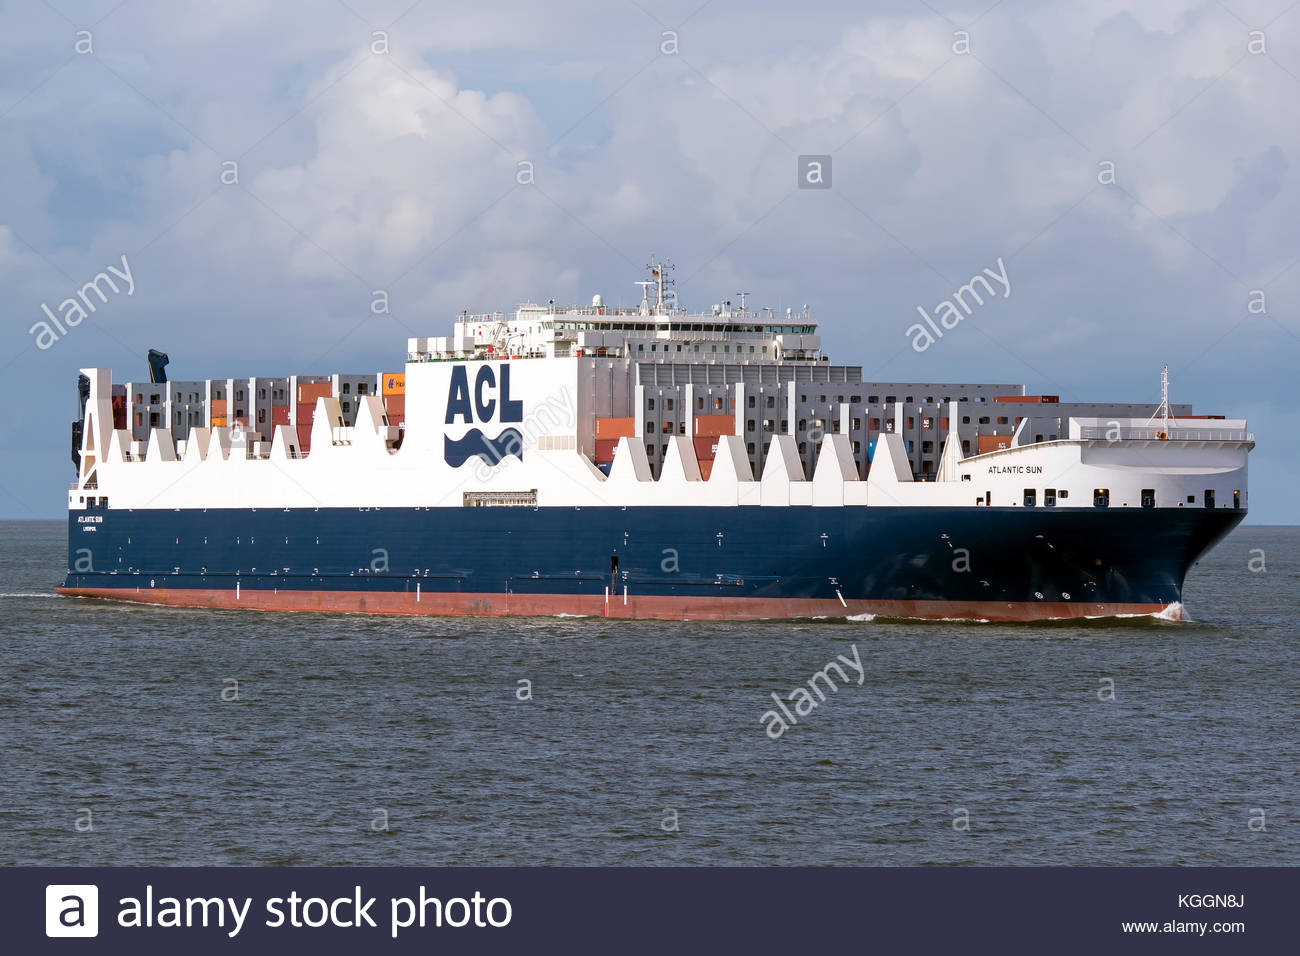 The Con/Ro vessel ATLANTIC SUN is passing the port of Cixhaven on the Elbe river - Stock Image